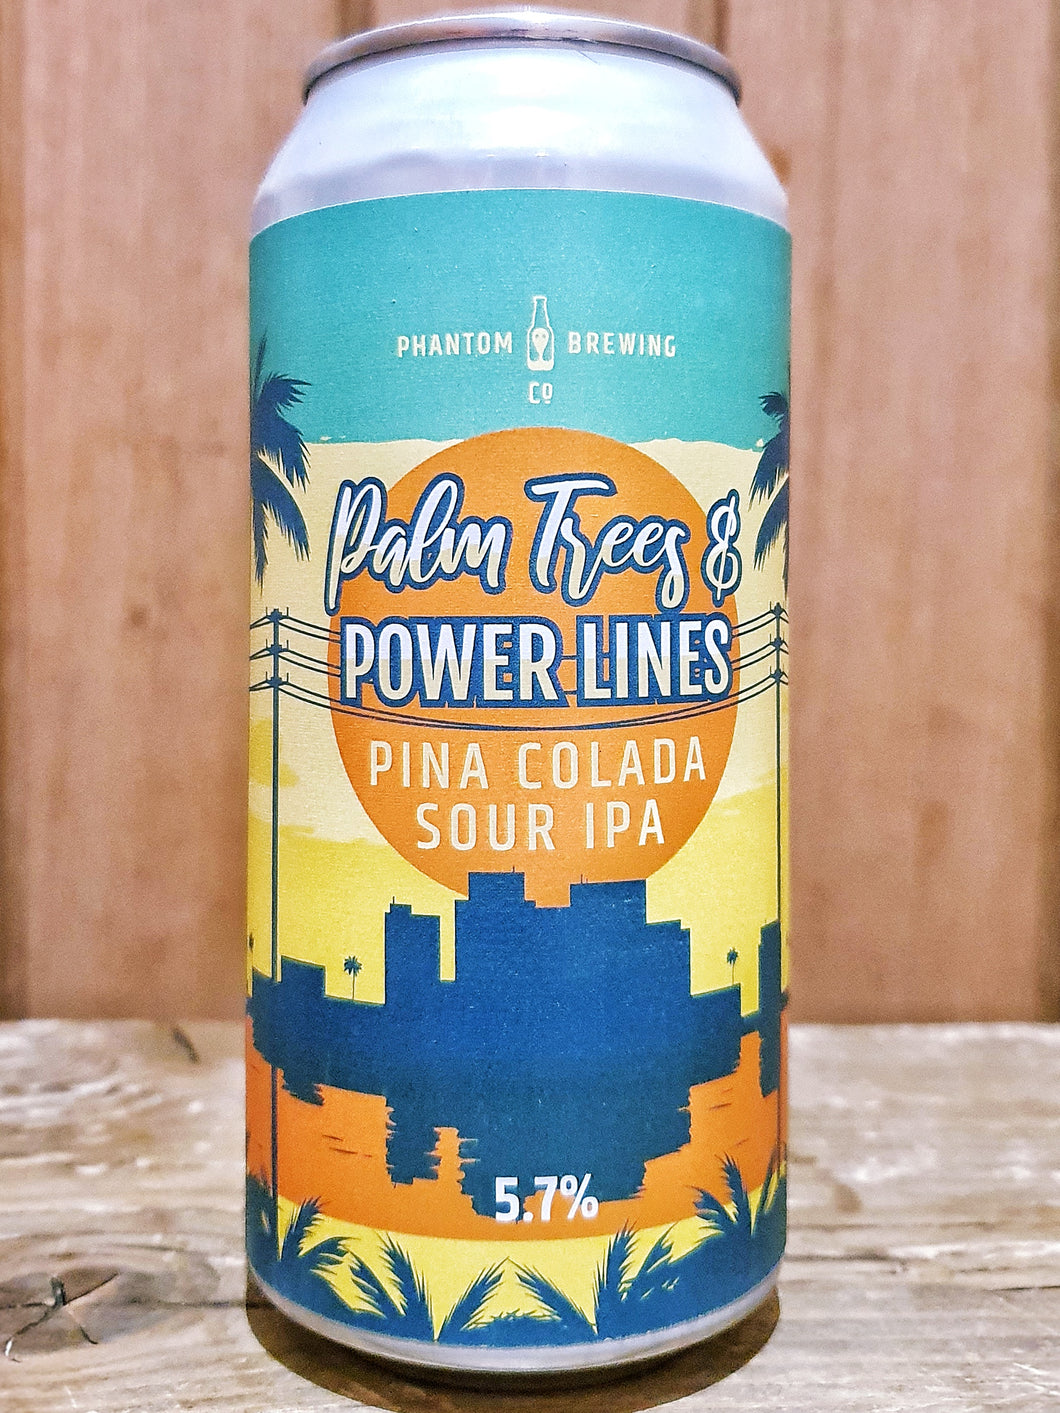 Phantom Brewing Co - Palm Trees and Power Lines